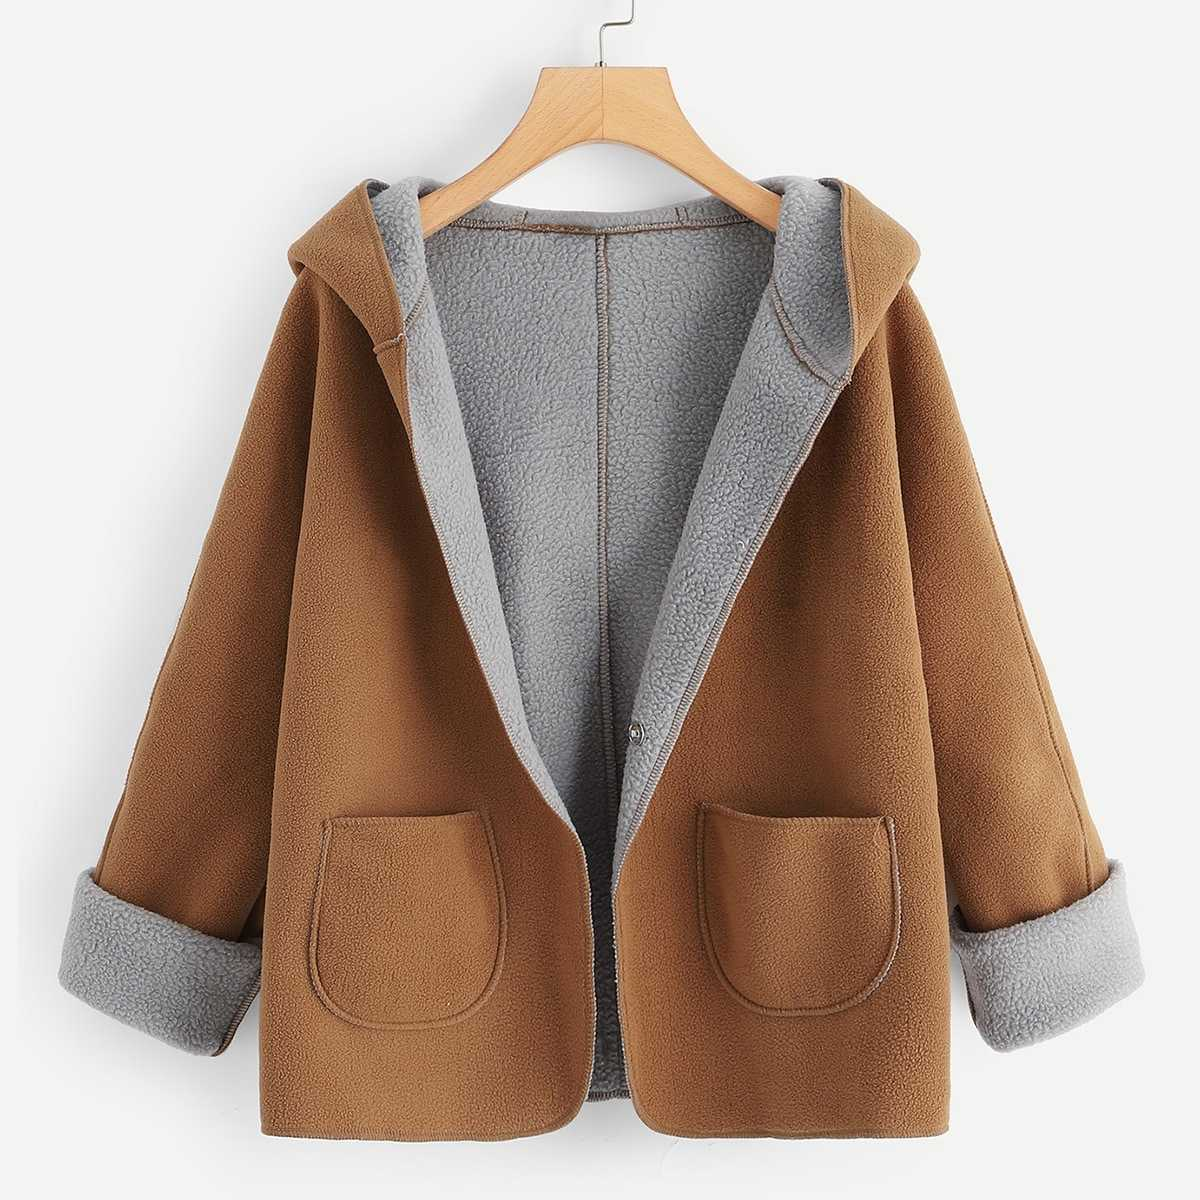 Khaki Contrast Sherpa Lining Single Button Hooded Coat in Brown by ROMWE on GOOFASH